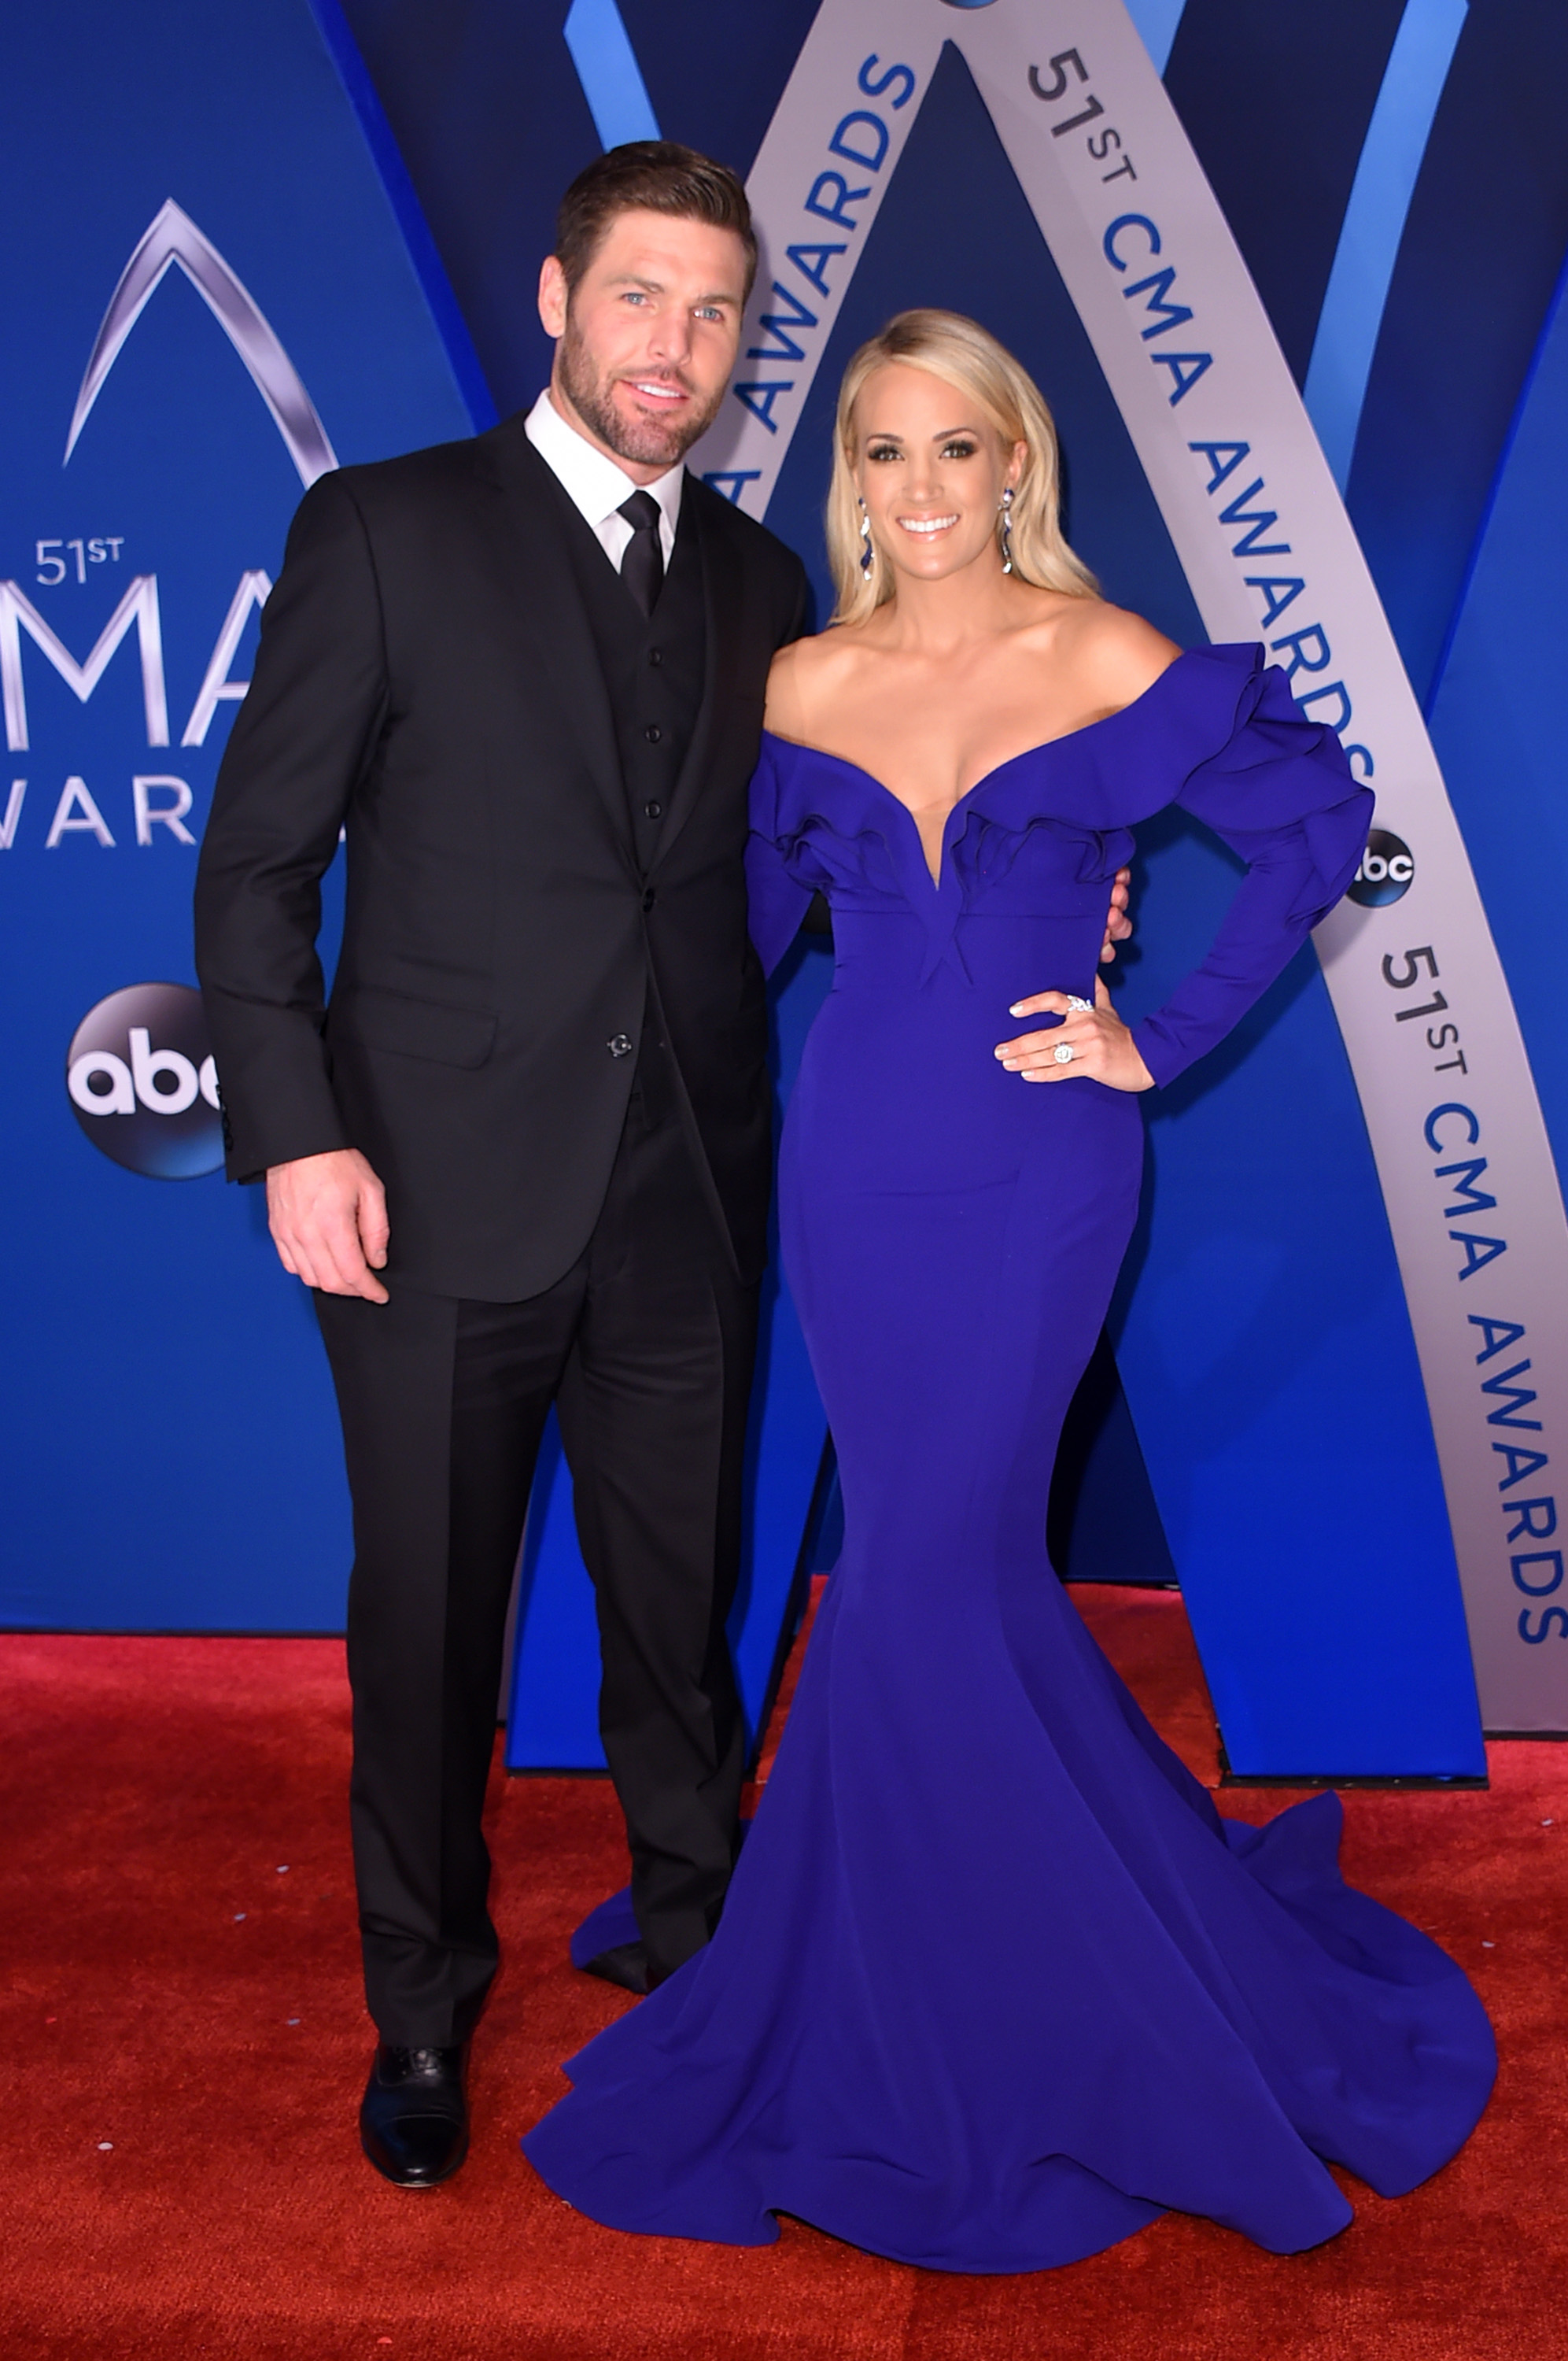 Mike Fisher and singer-songwriter Carrie Underwood attend the 51st annual CMA Awards 2017 in Nashville, Tennessee. (Source: Getty Images)